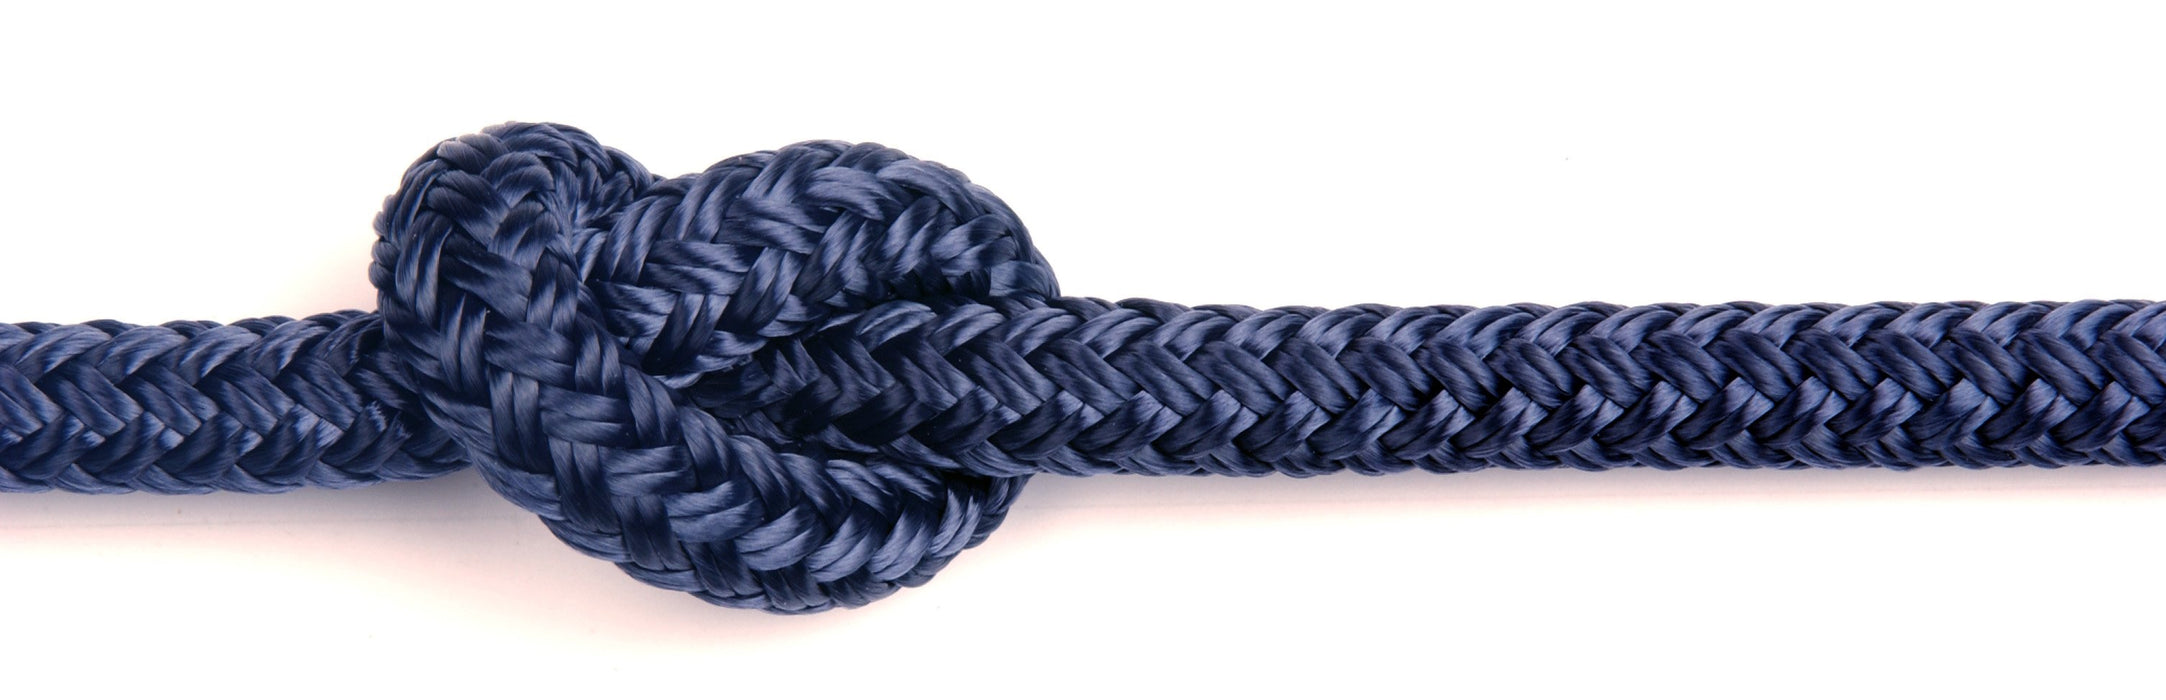 Kingfisher 10m x Braid-on-braid polyester melanges rope - Dinghy Shack